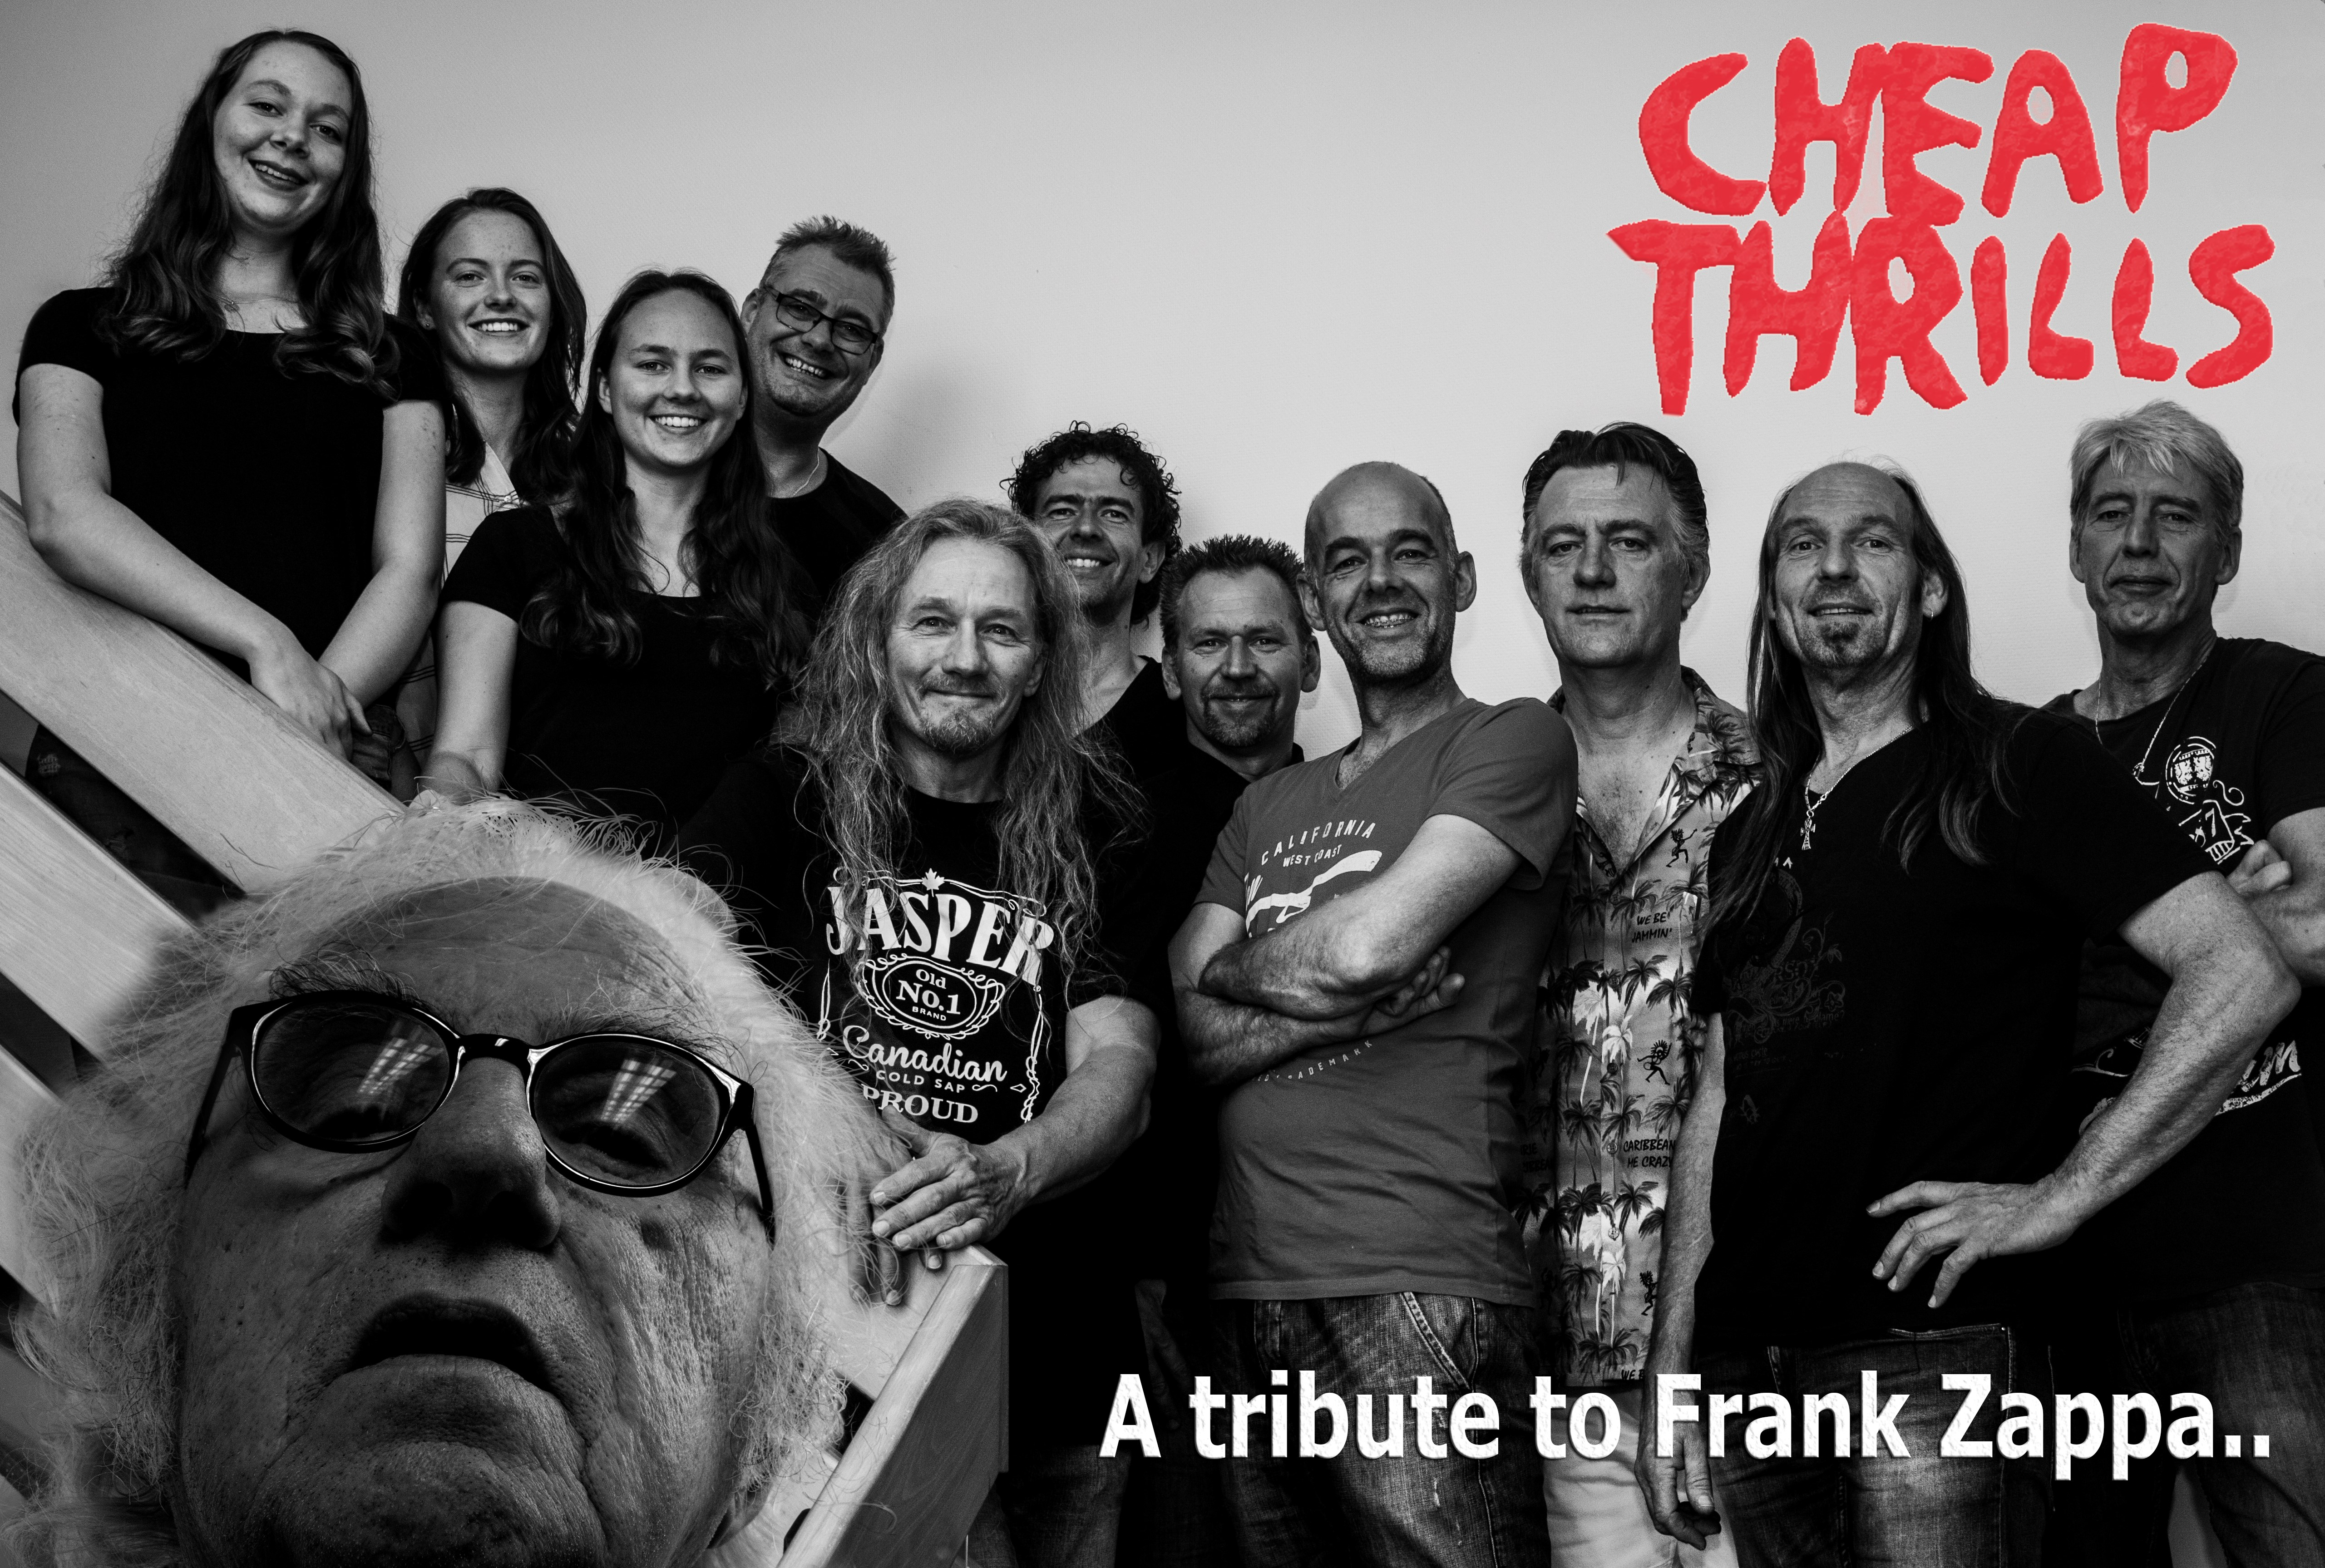 Cheap Thrills - A tribute to Frank Zappa - (fotograaf onbekend) - campagnebeeld.jpg